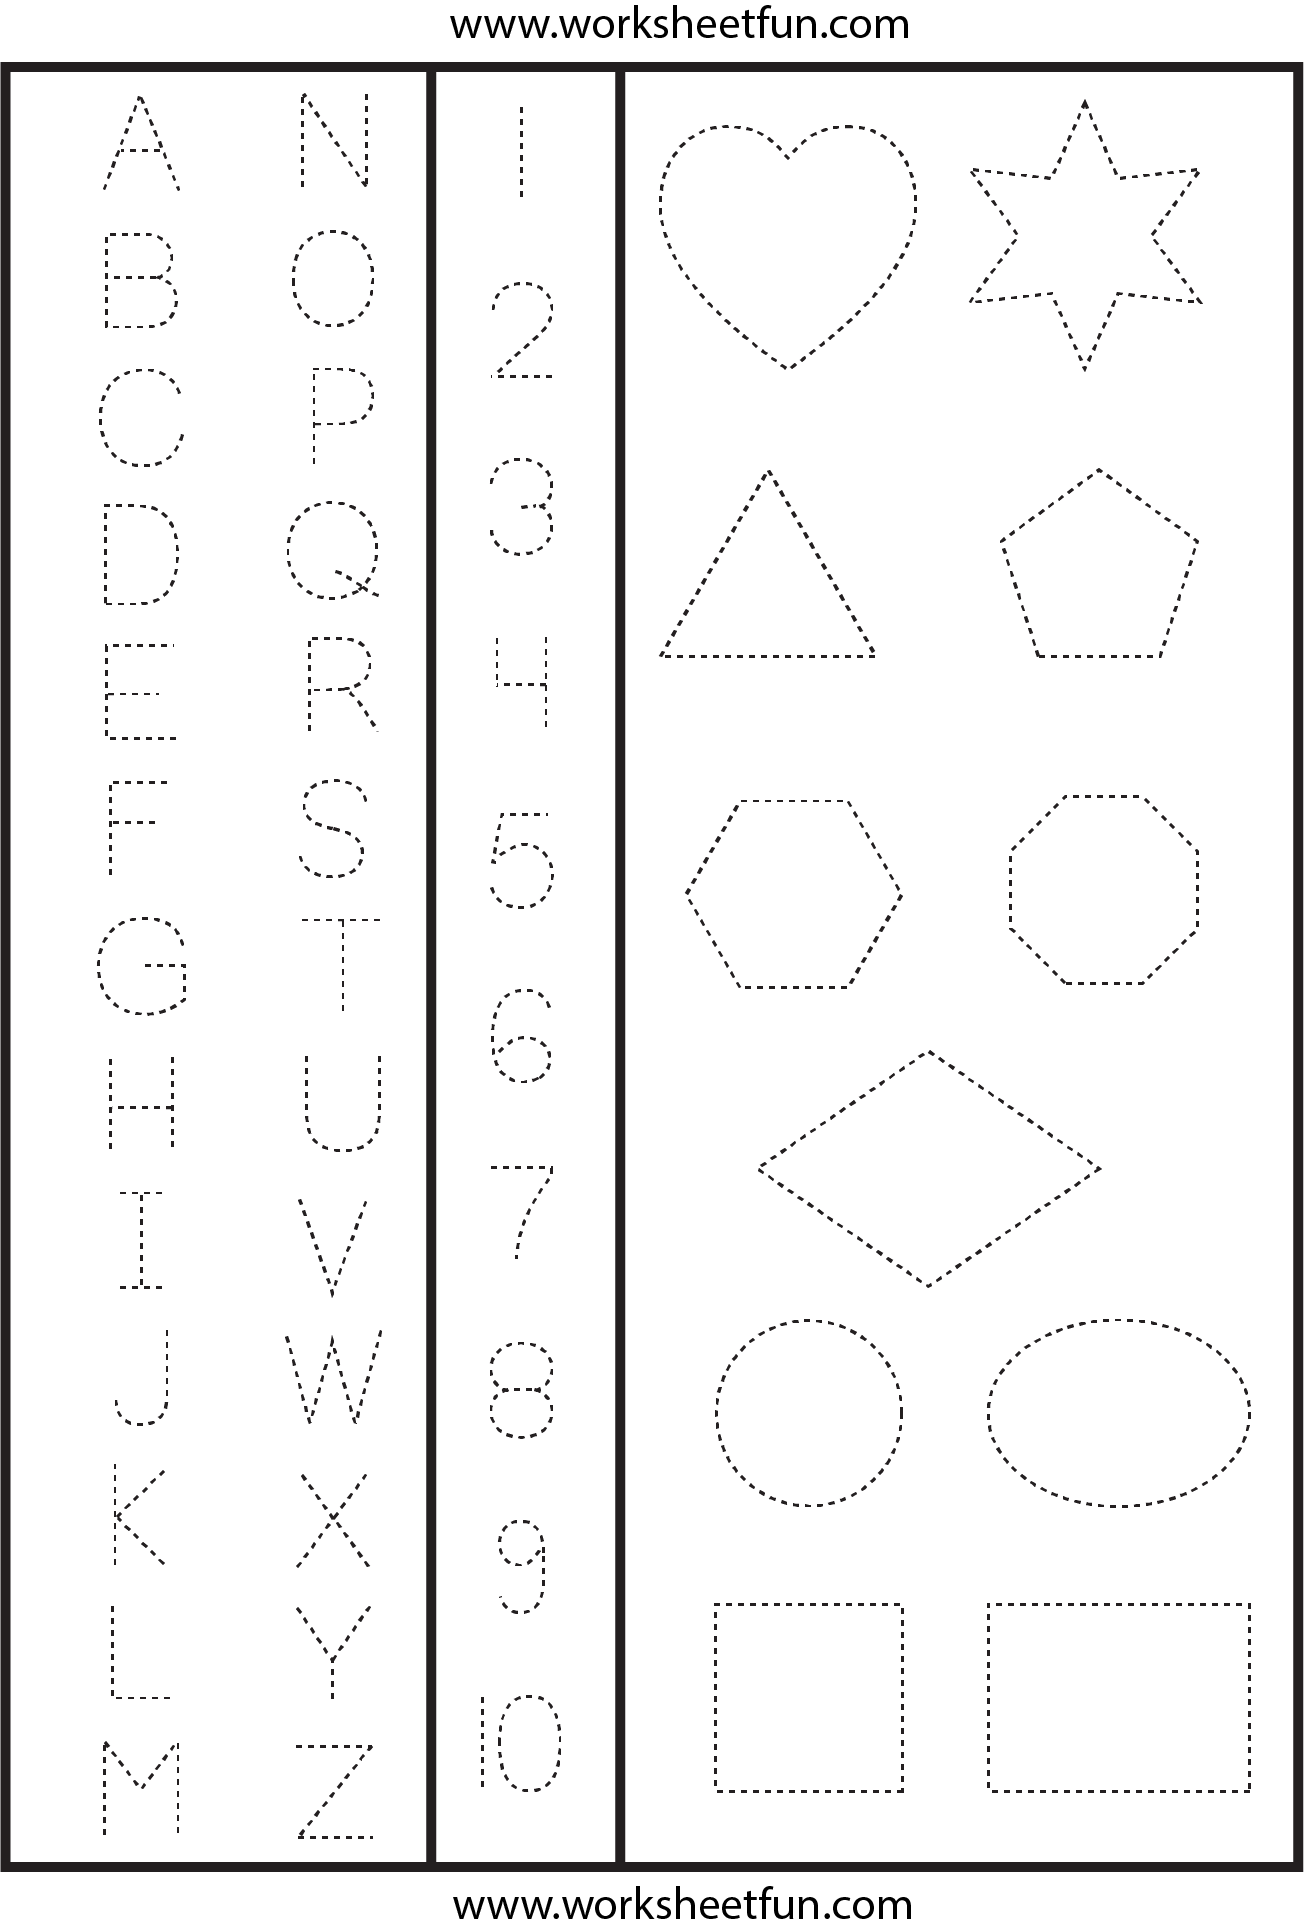 letters numbers shapes tracing worksheet shape tracing worksheets tracing worksheets. Black Bedroom Furniture Sets. Home Design Ideas